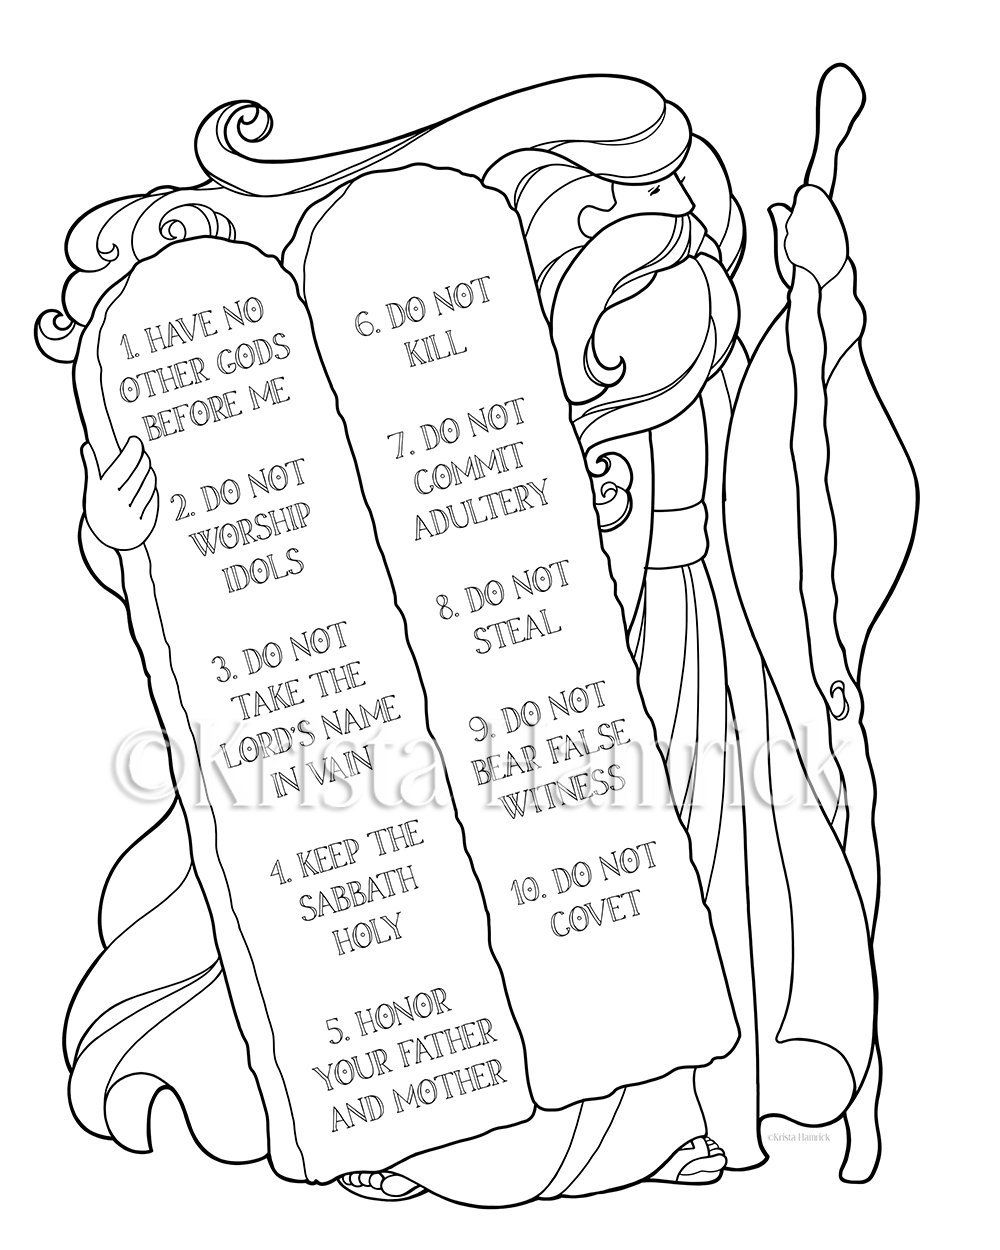 Moses And The Ten Commandments Coloring Page In Two Sizes Etsy Bible Coloring Pages Bible Coloring Bible Verse Coloring Page